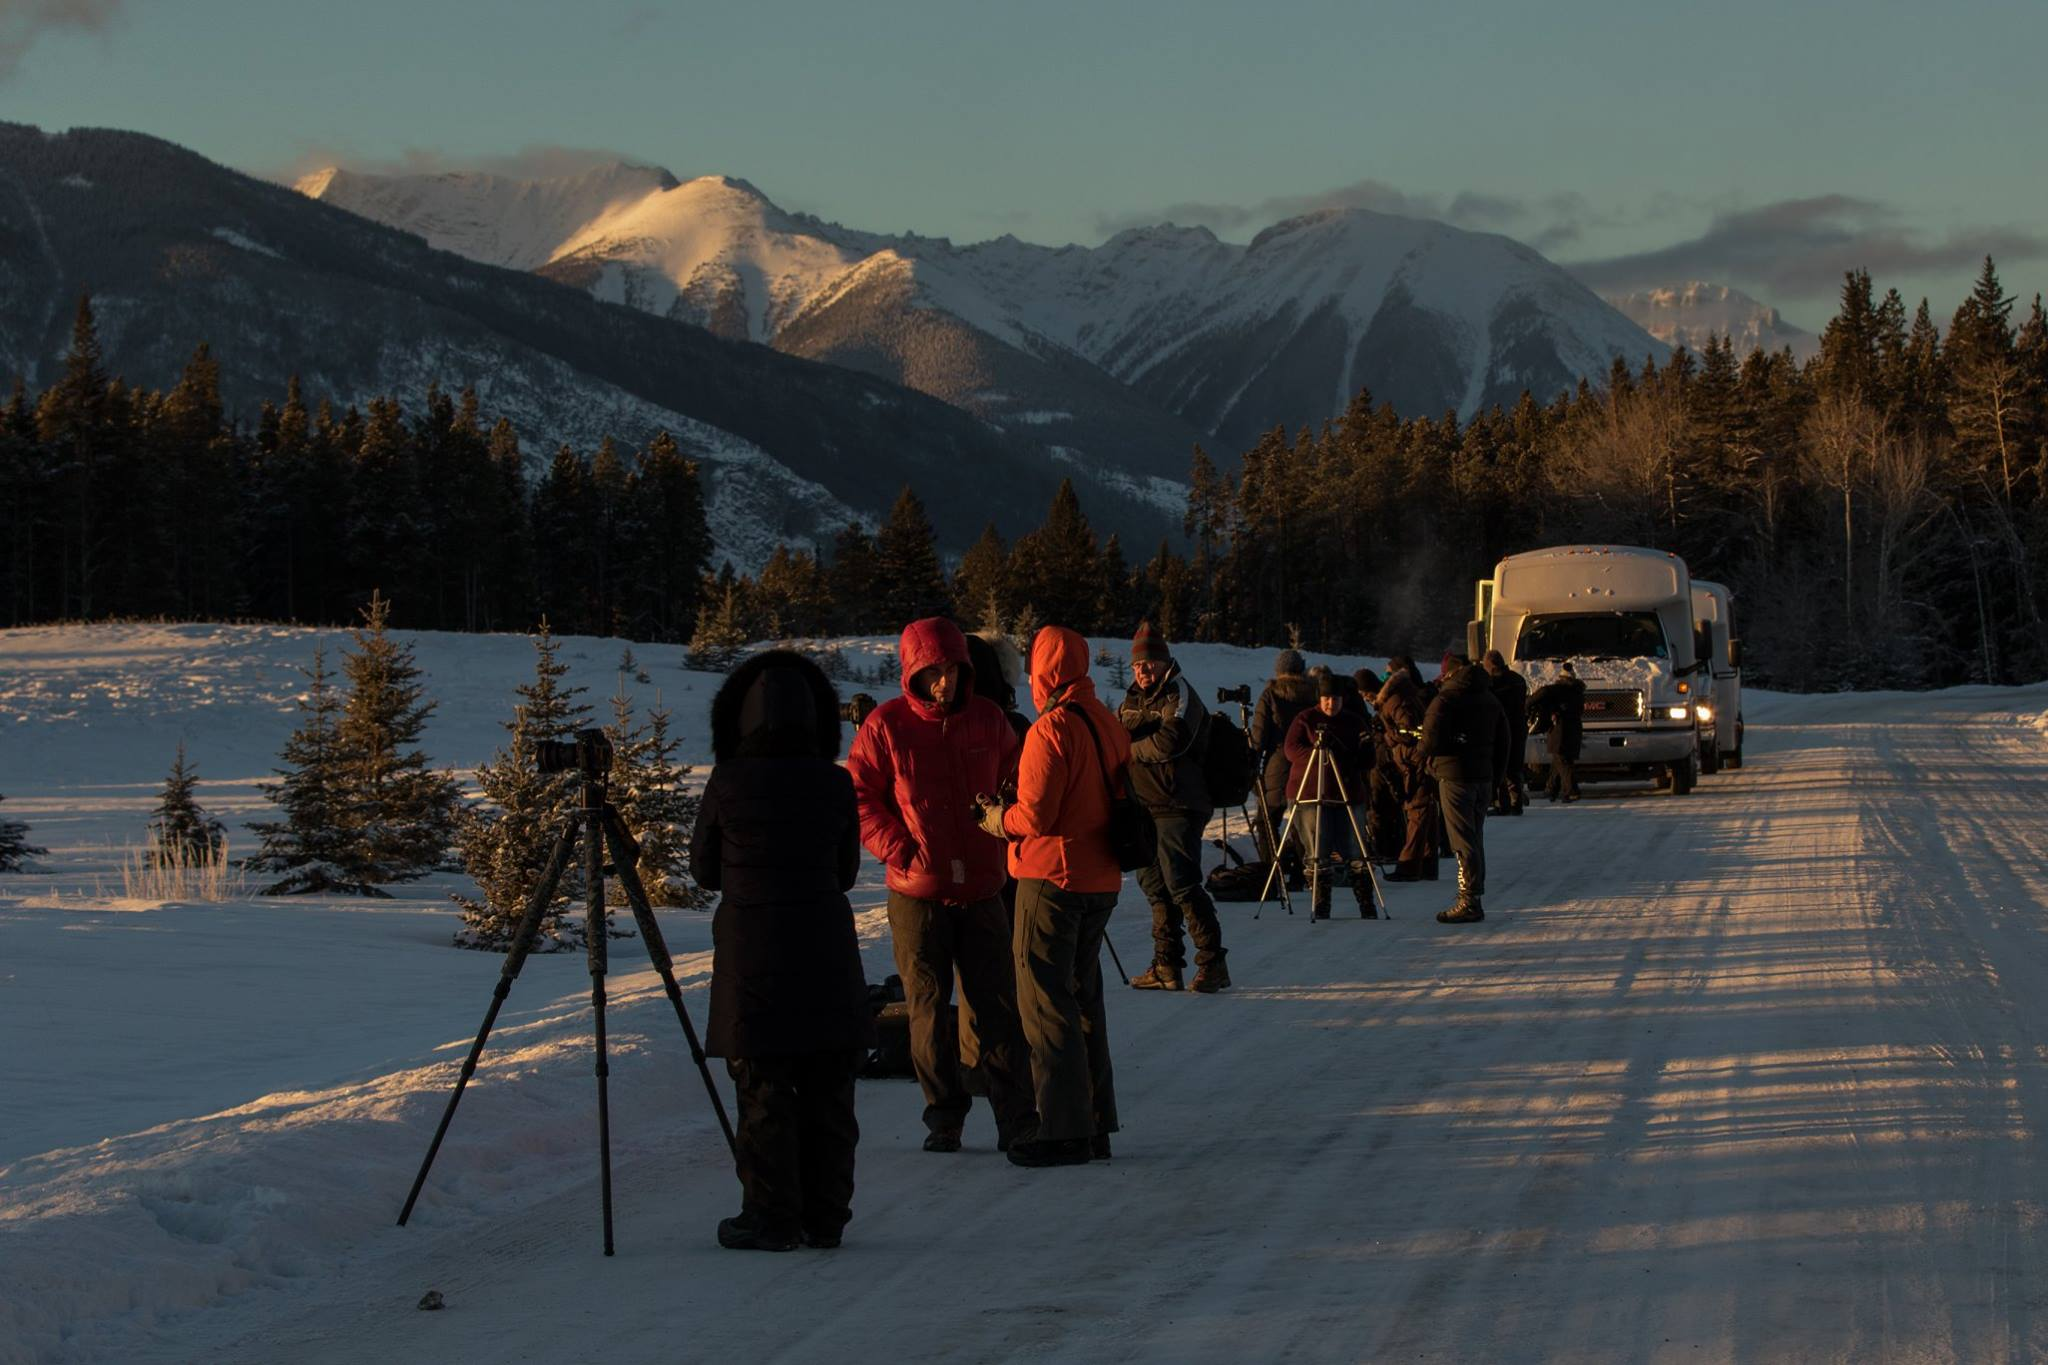 Sunrise during one of the Banff national Park Tours during the 2016 Summit